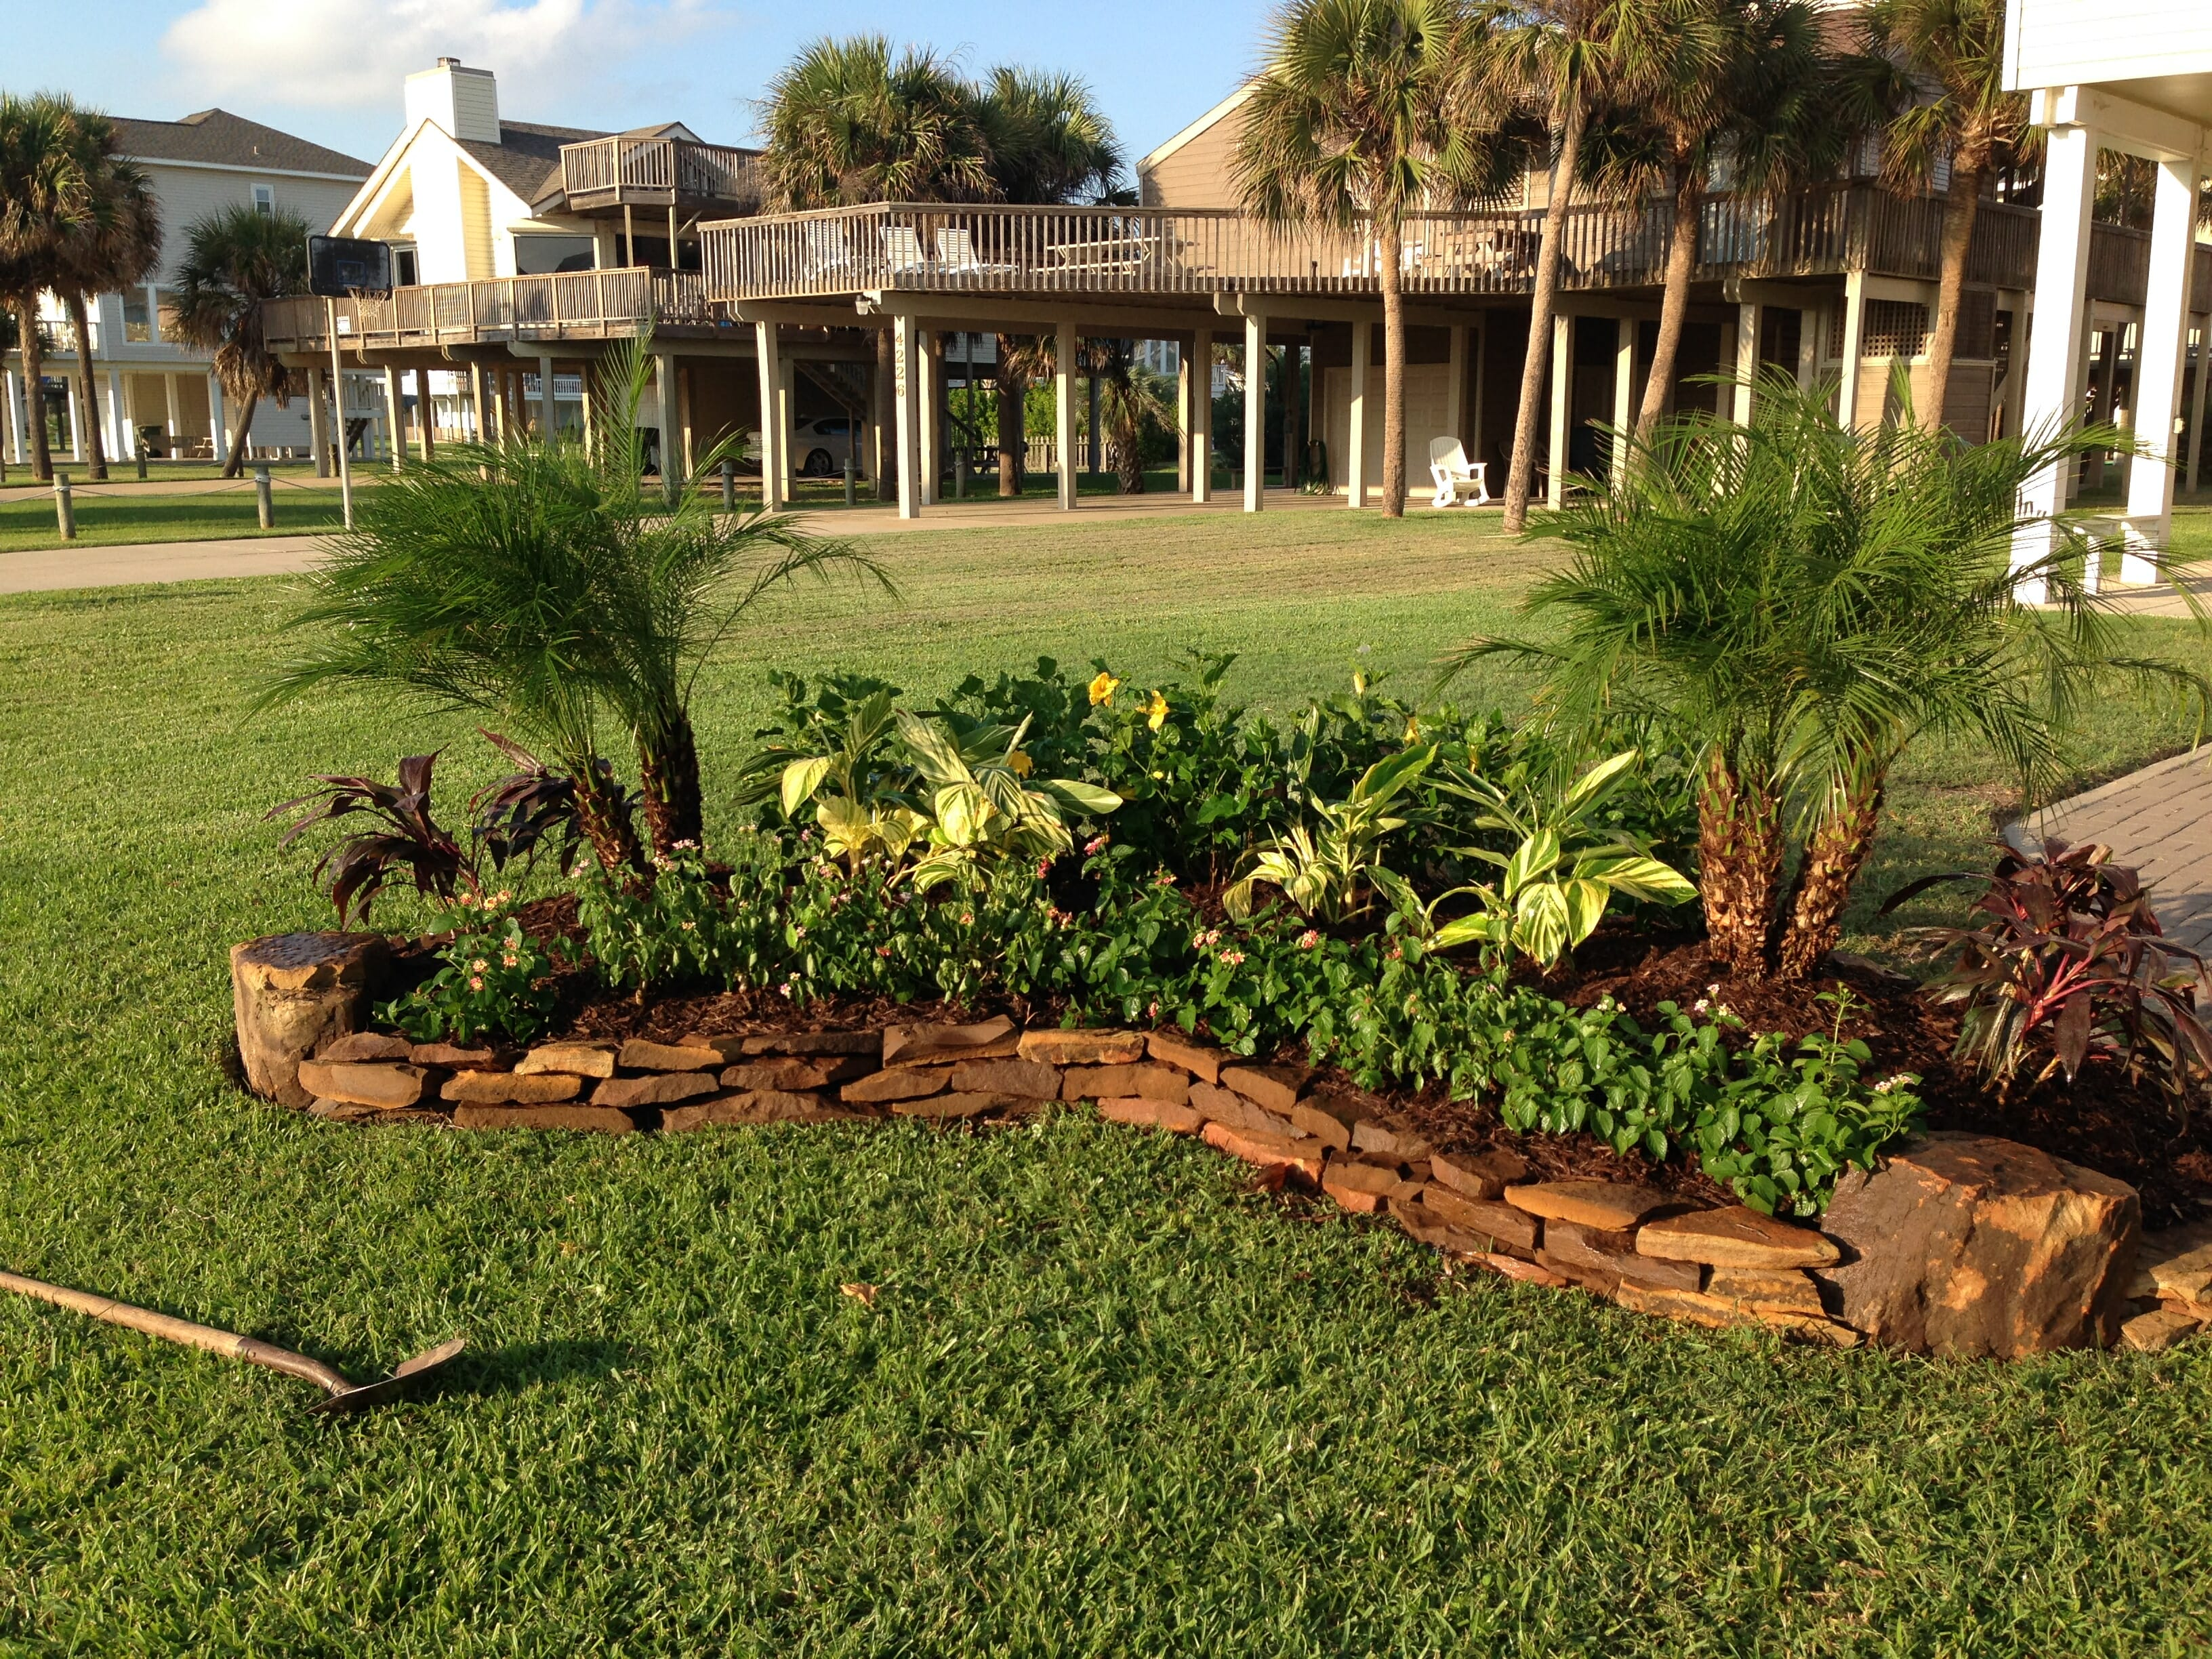 Elegant ... Custom Residential Landscaping Team From Brogdon Landscaping Can Help  You Design Your Very Own Custom Landscaping That Suits Your Budget, Your  Home, ...